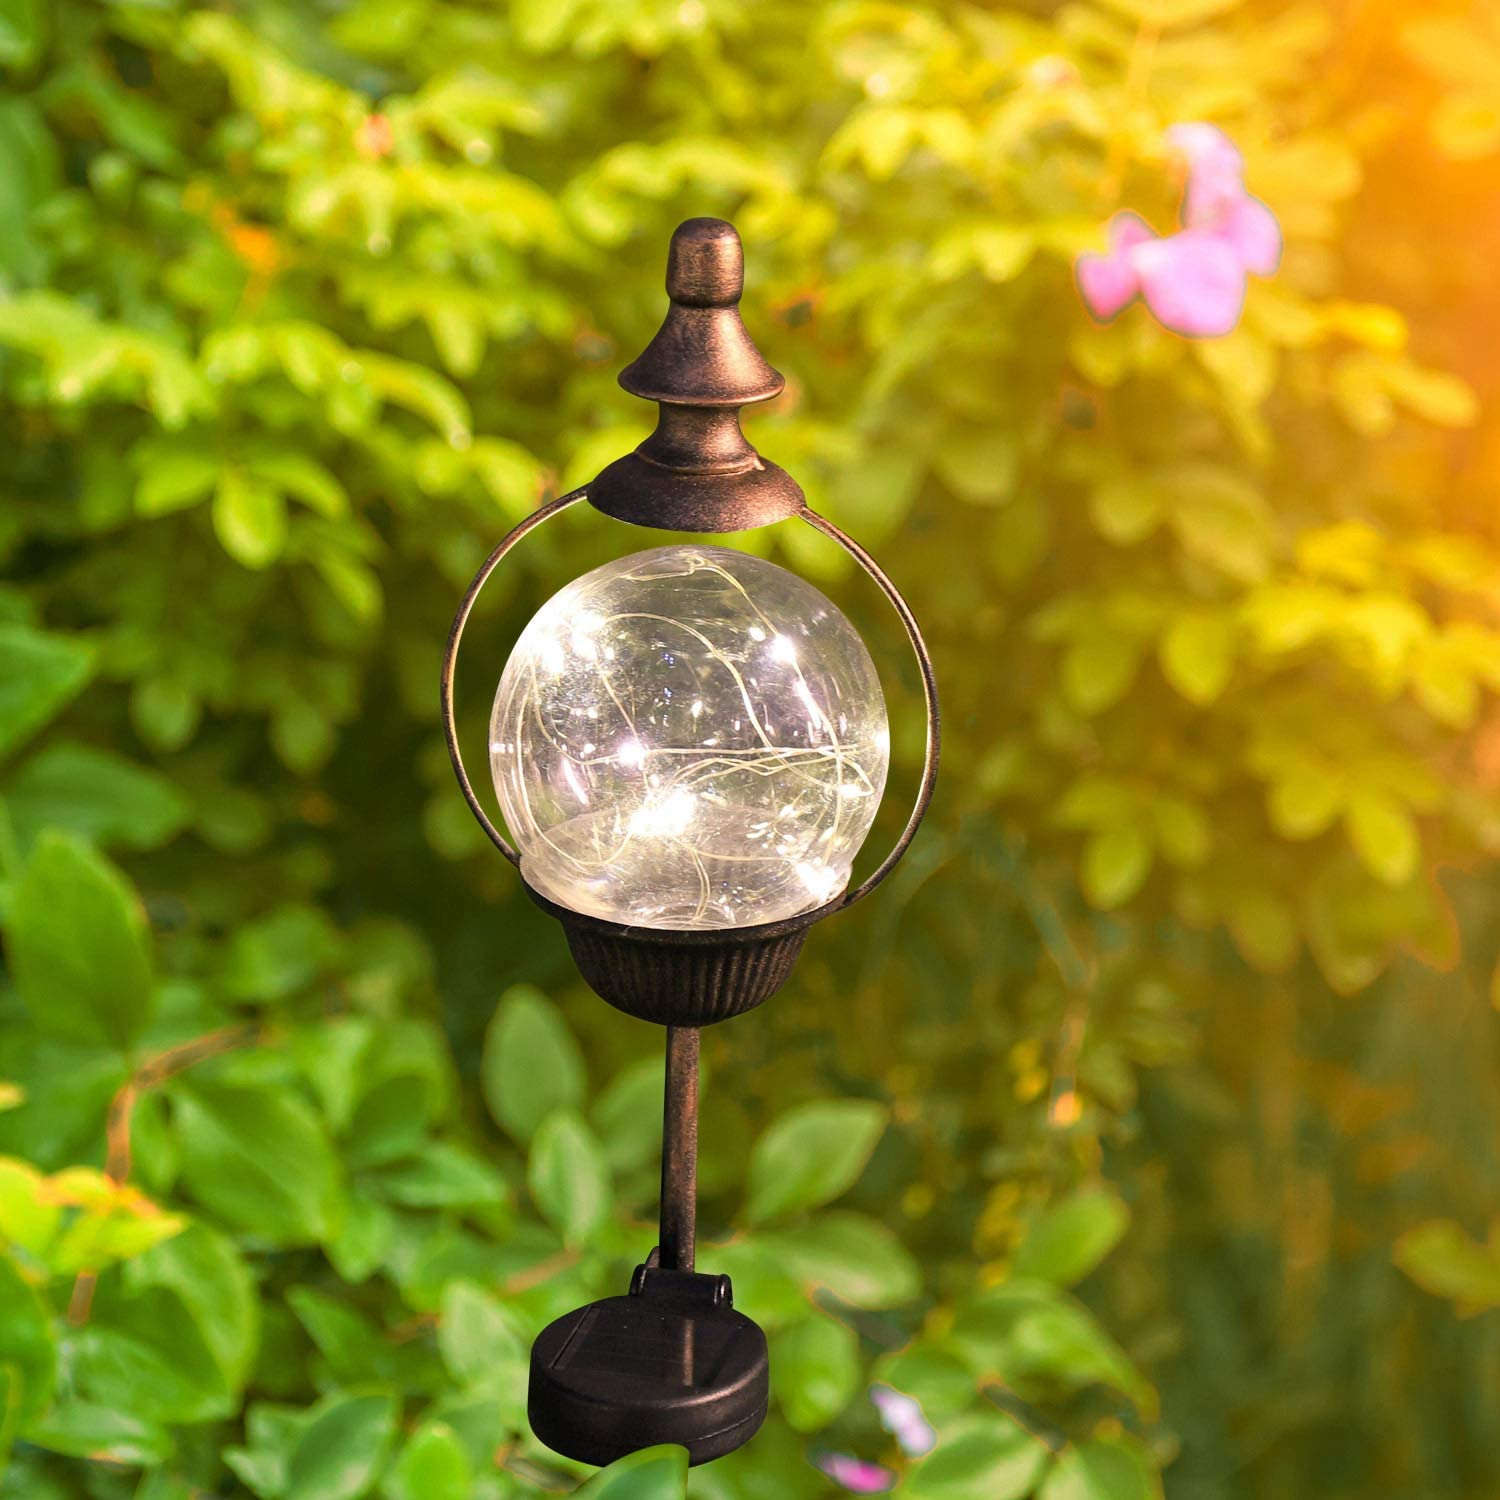 Outdoor Decorations for Patio Lawn Garden Yard with Solar Globe Lights. ExcMark 2 Pack Solar Garden Lights Outdoor Decorative Stakes